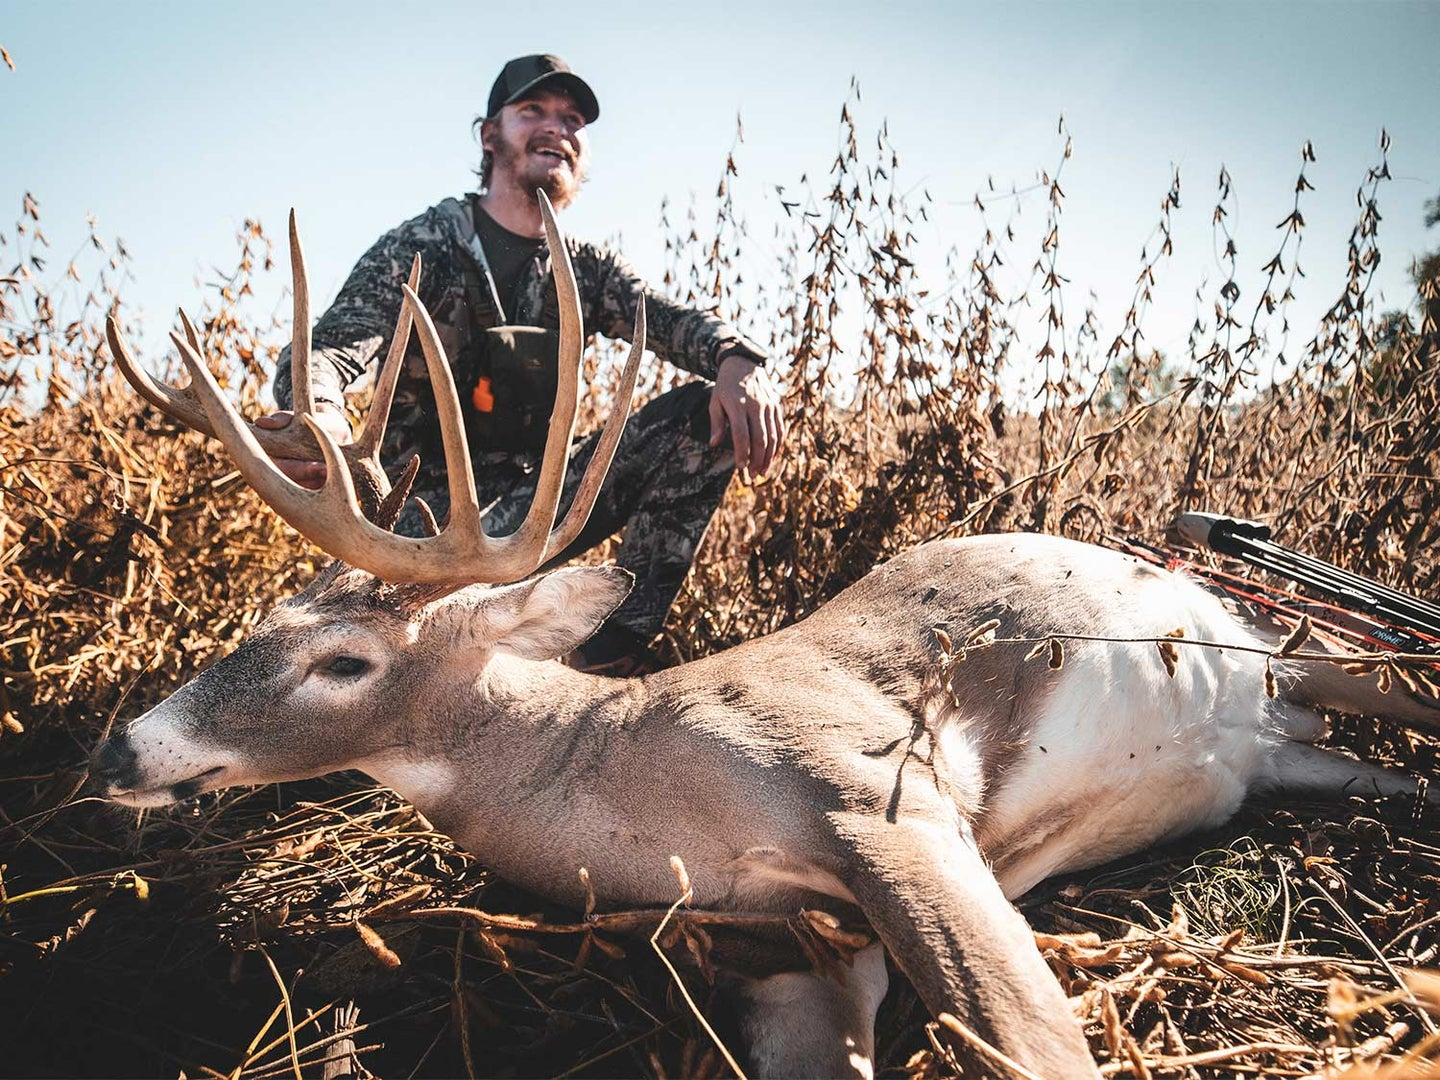 A hunter kneels behind a dropped whitetail buck in a large field.